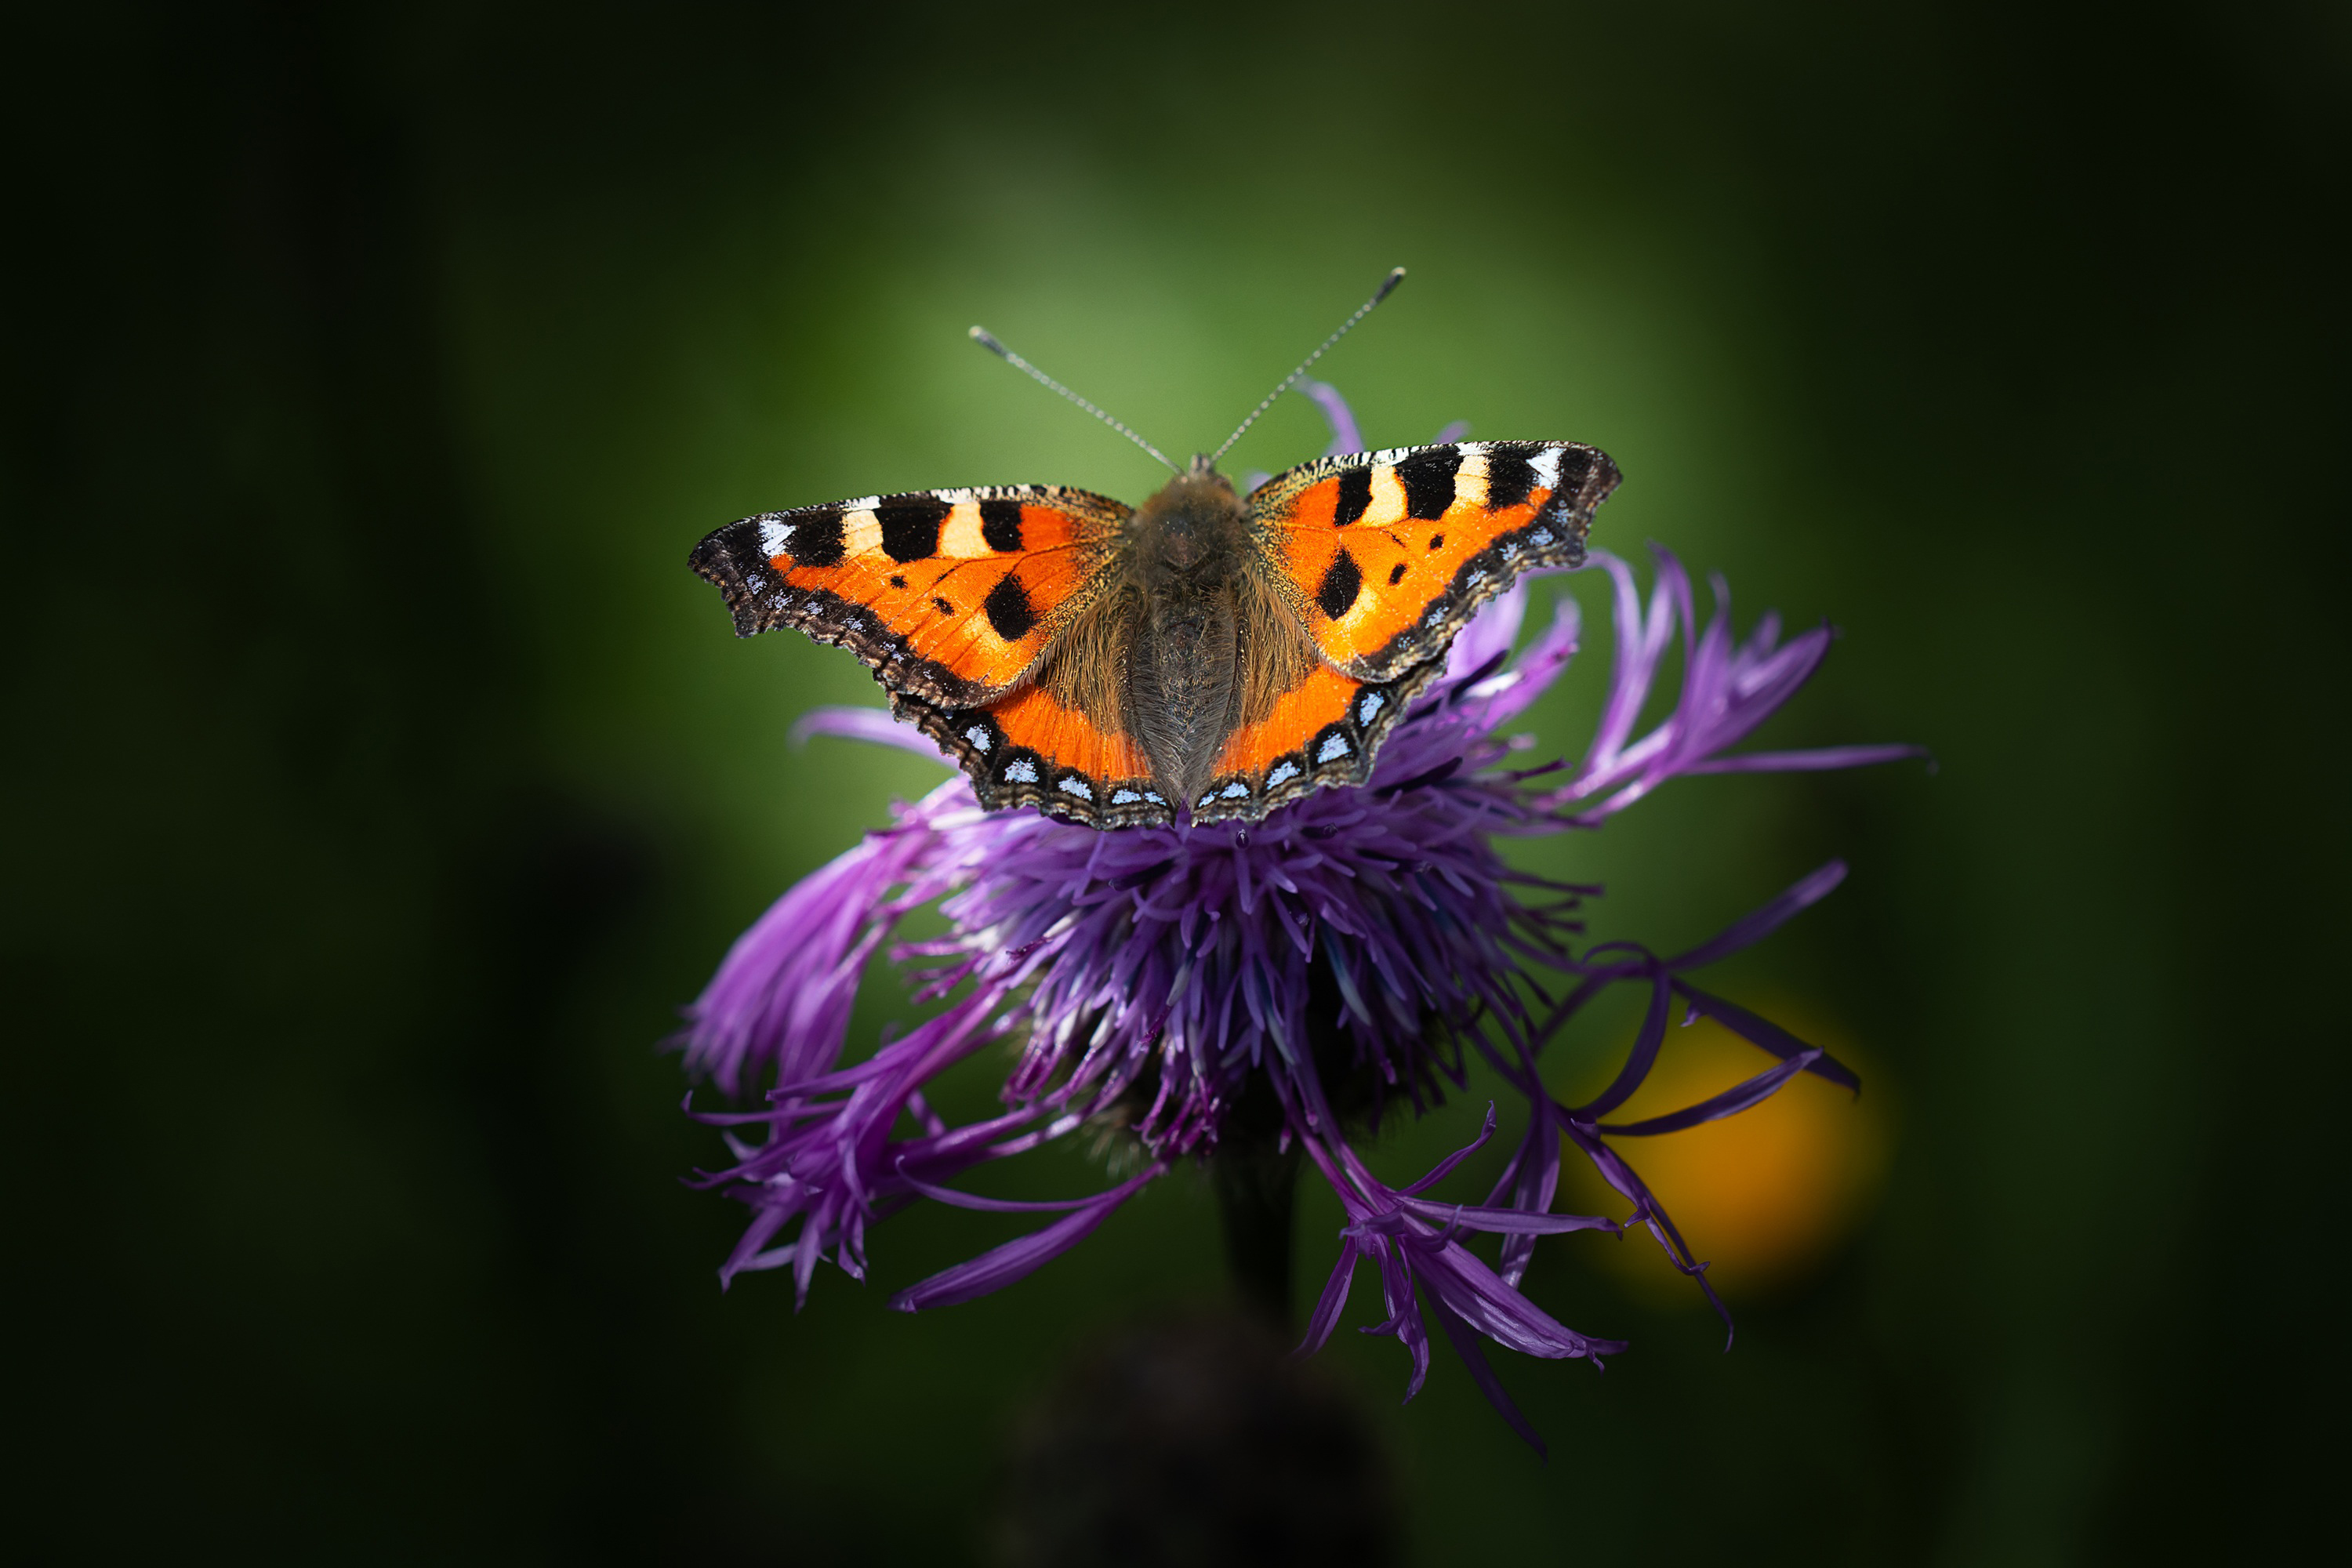 butterfly, little fox, insect, small,